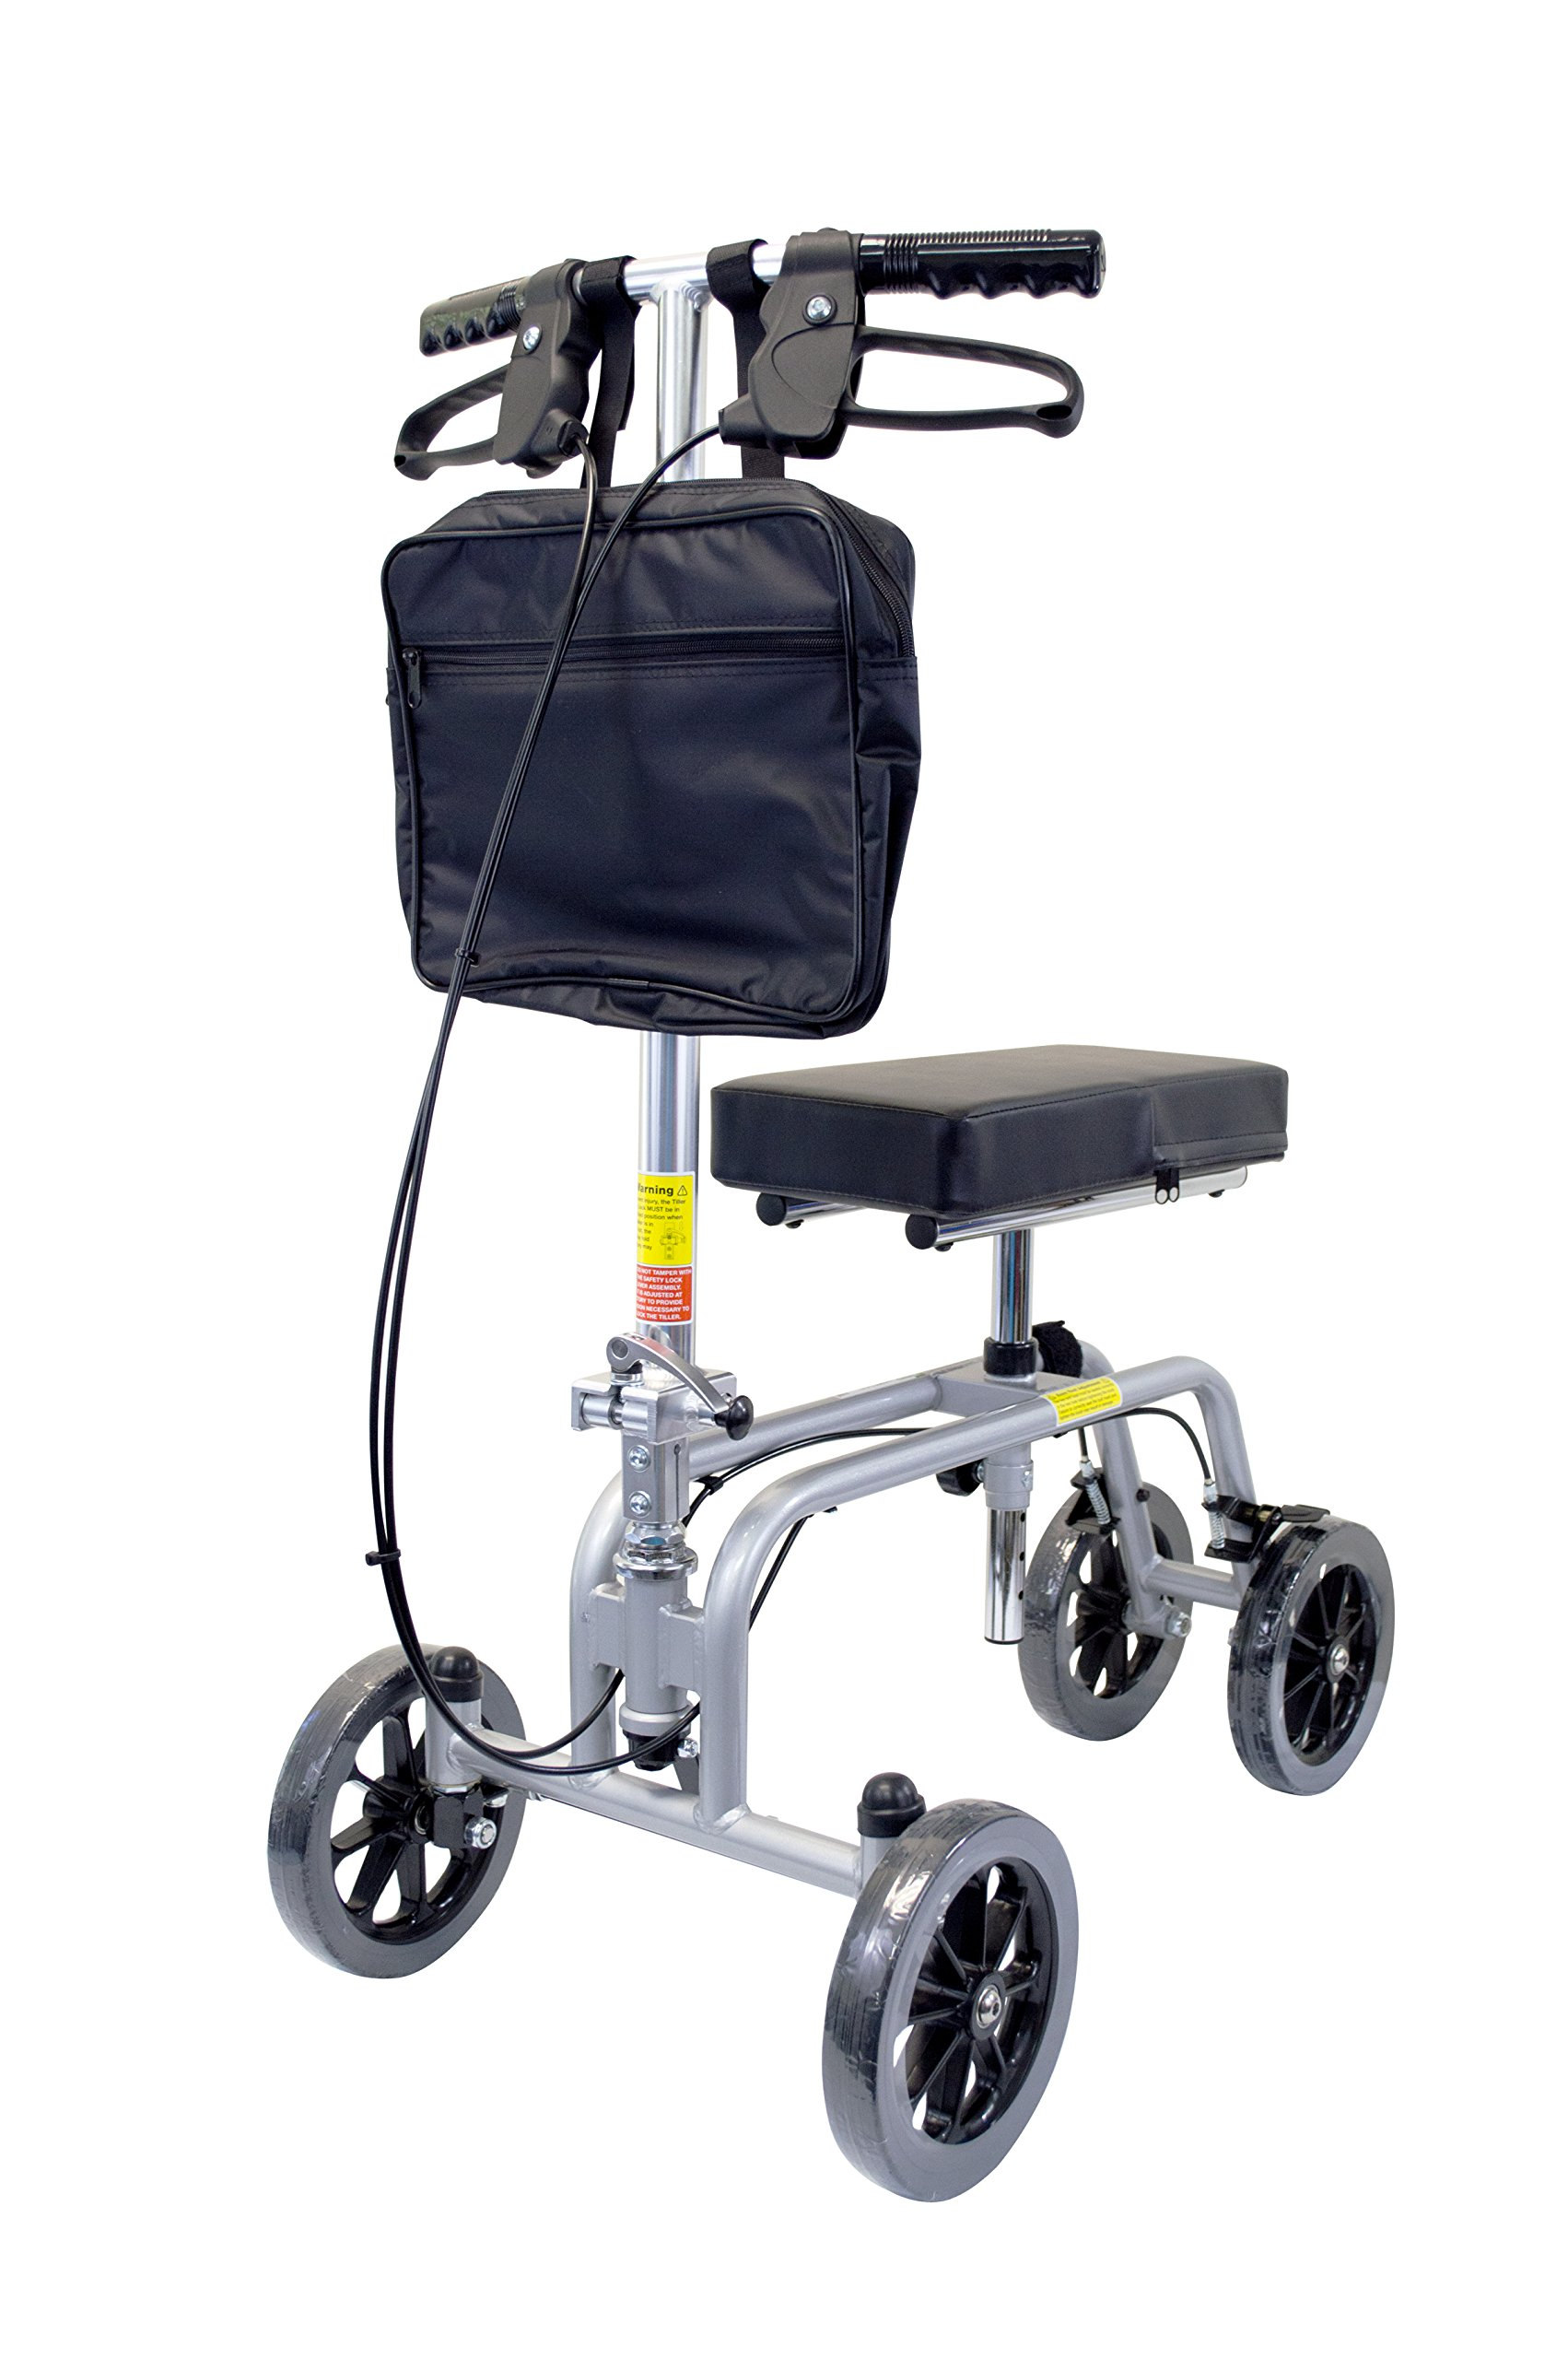 Essential Medical Supply Free Spirit Knee and Leg Walker with Patented Design, Unique Turning Mechanism, Extra Height Adjustability and 400lb Weight Capacity by Essential Medical Supply